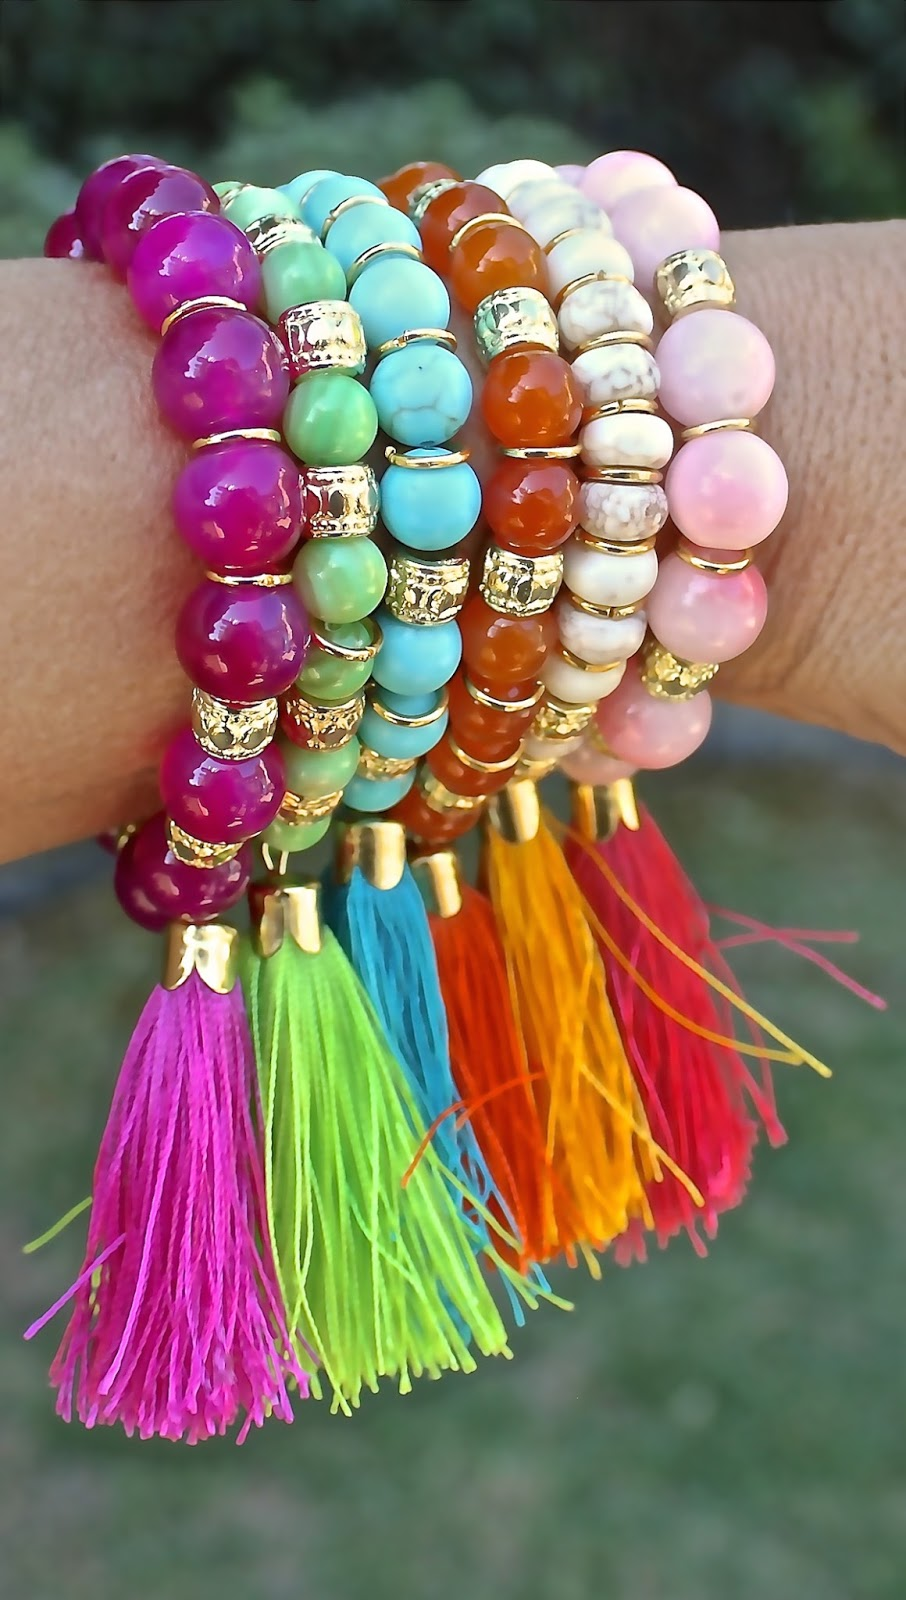 bracelet product main nkc beachy new singh necklace beach bali jewelry multi shop amrita